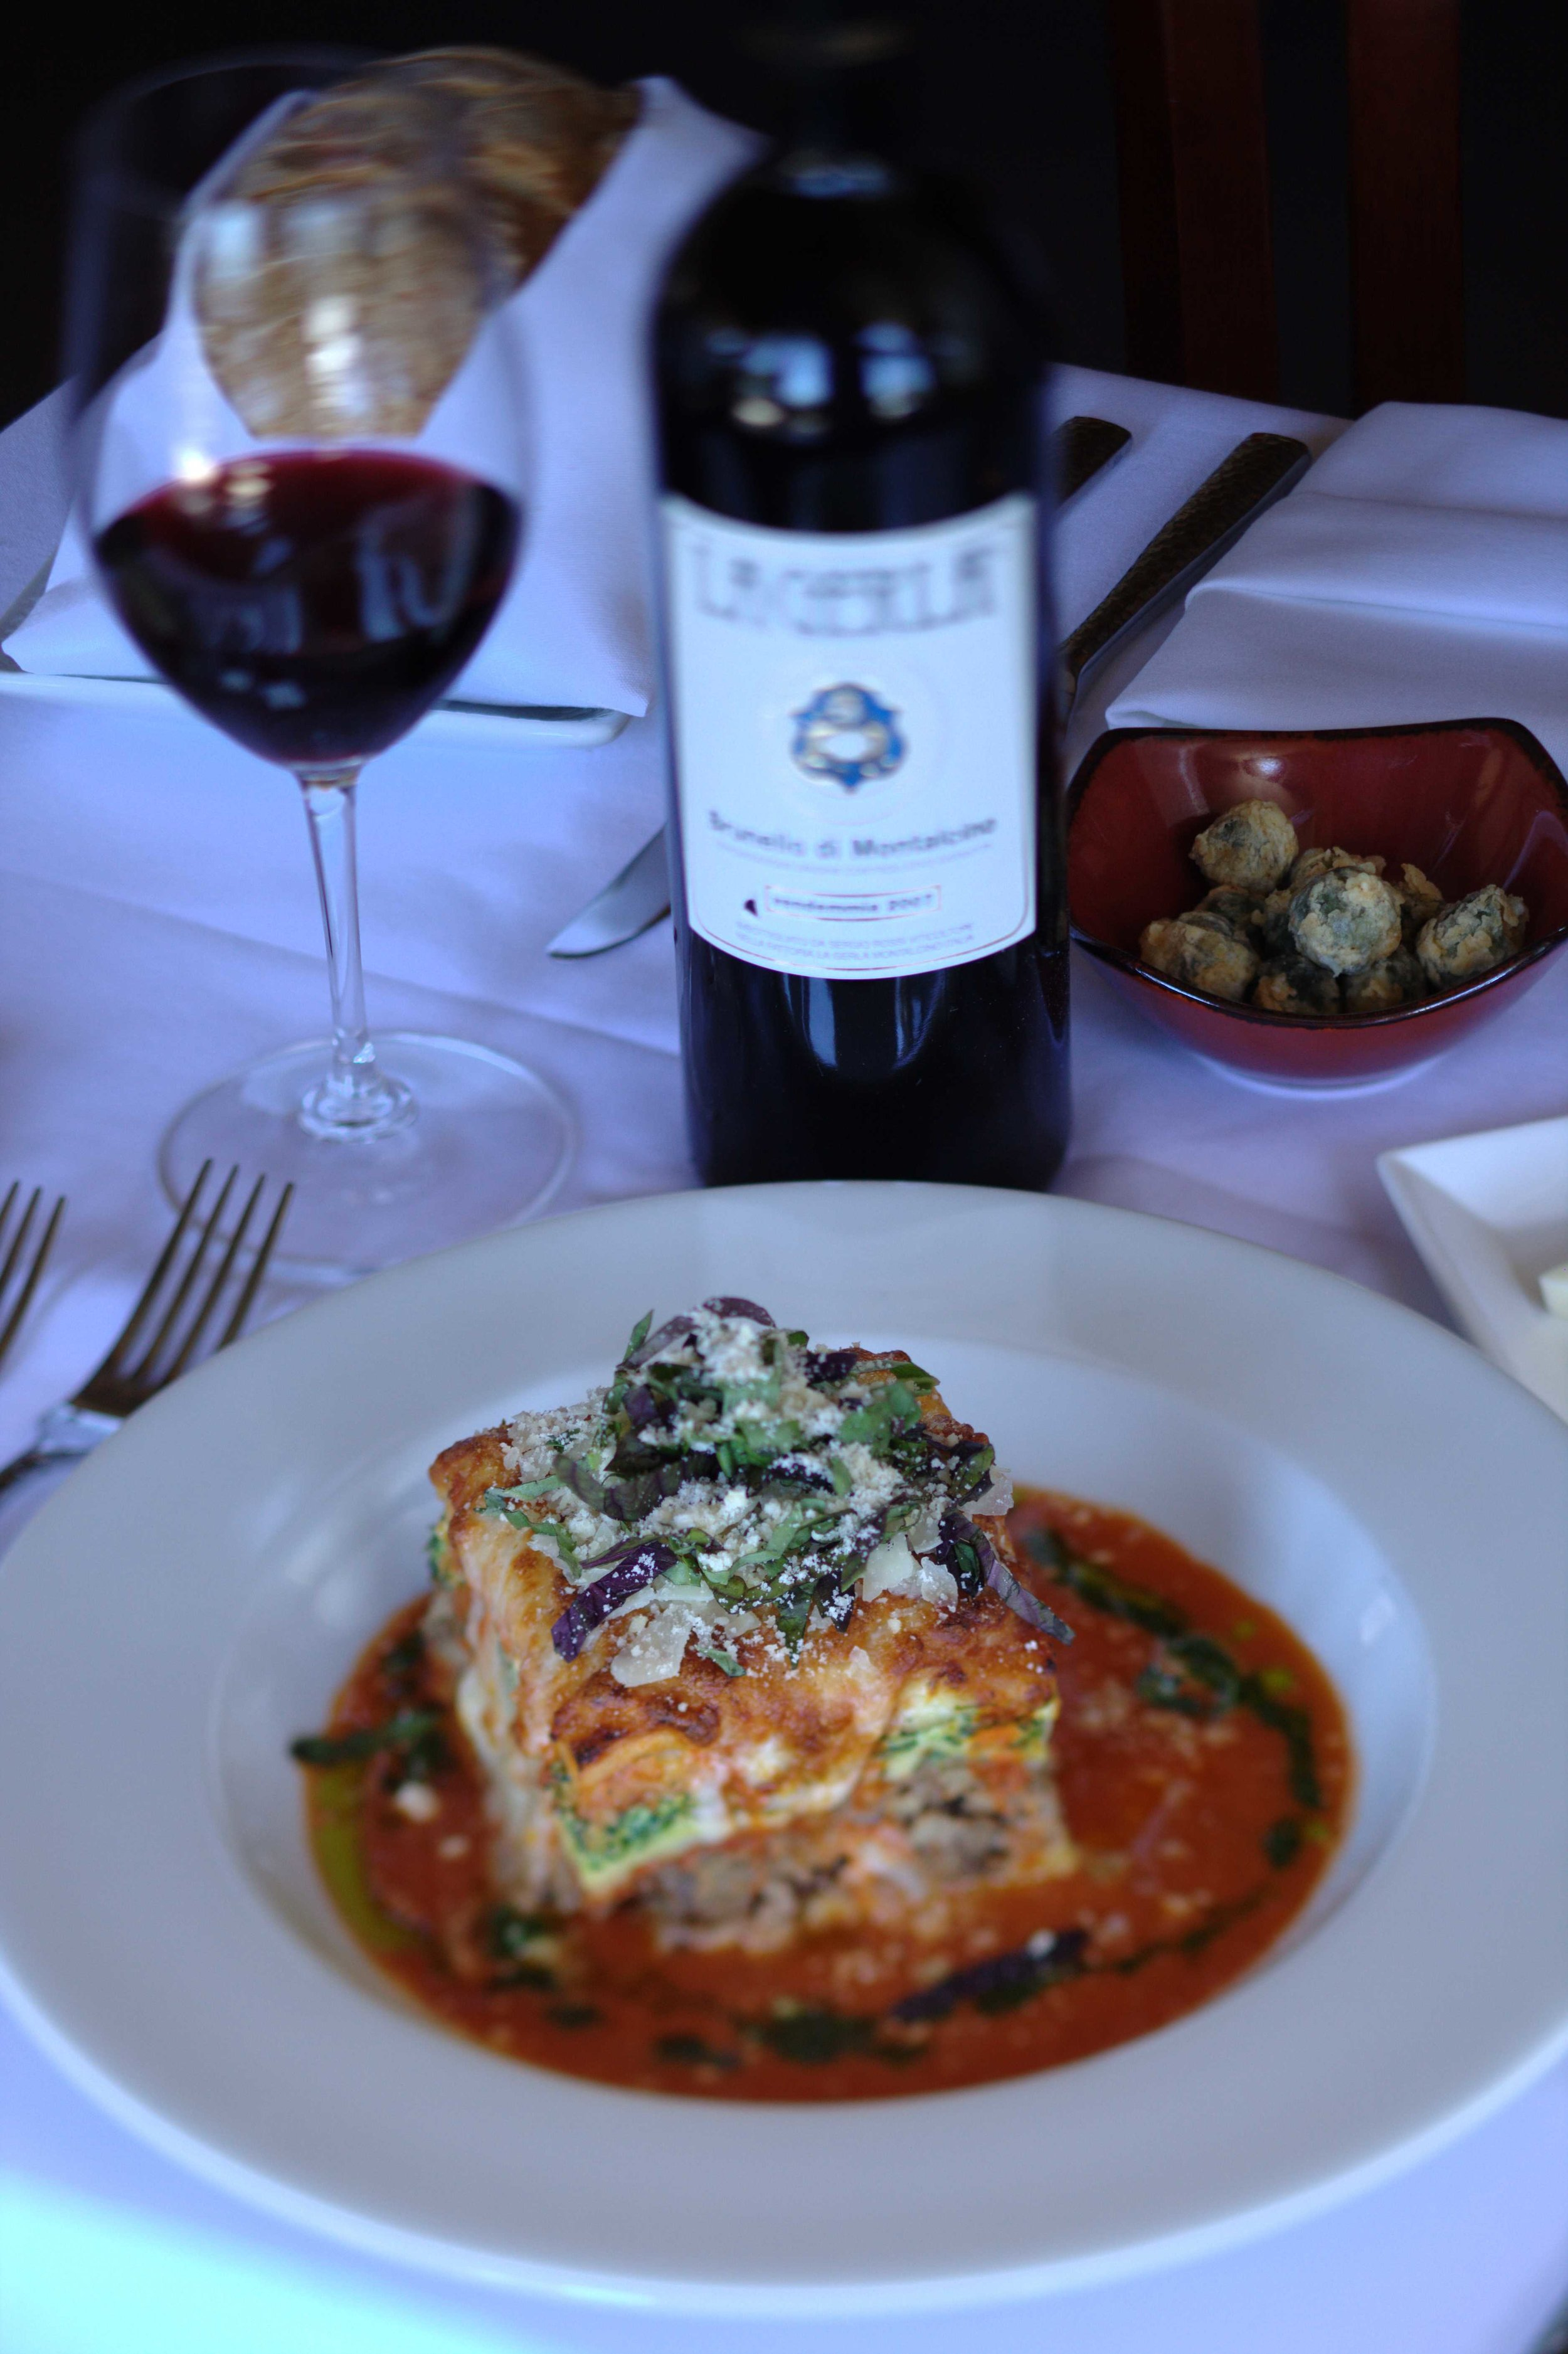 Entrees - Our handcrafted dishes use locally-sourced ingredients for truly inspirational cuisine